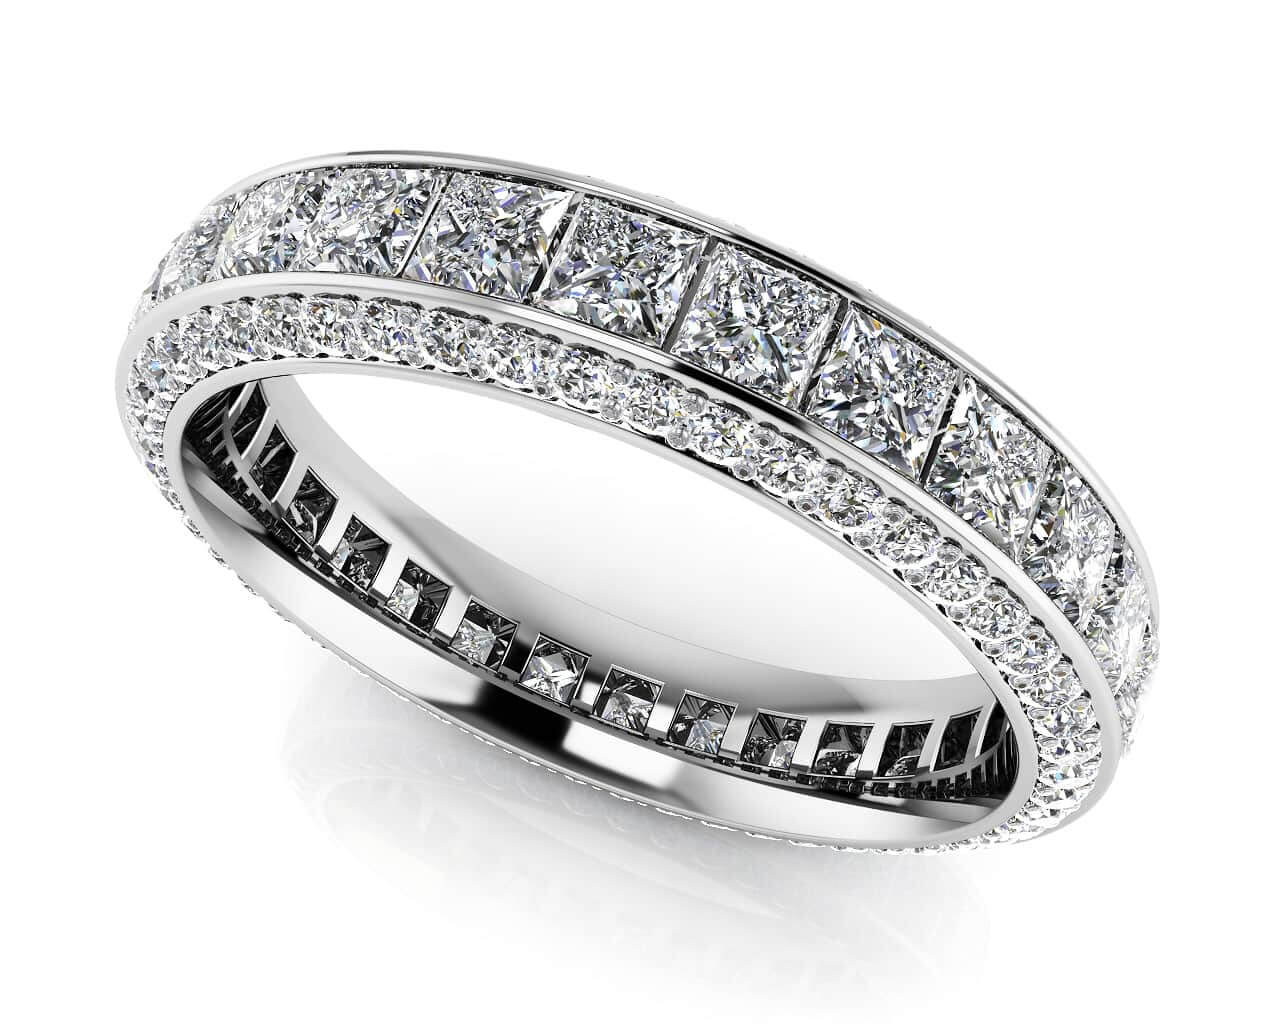 g princess ladies in white color ct wedding bands band si cut kt round eternity clarity gold ring diamond